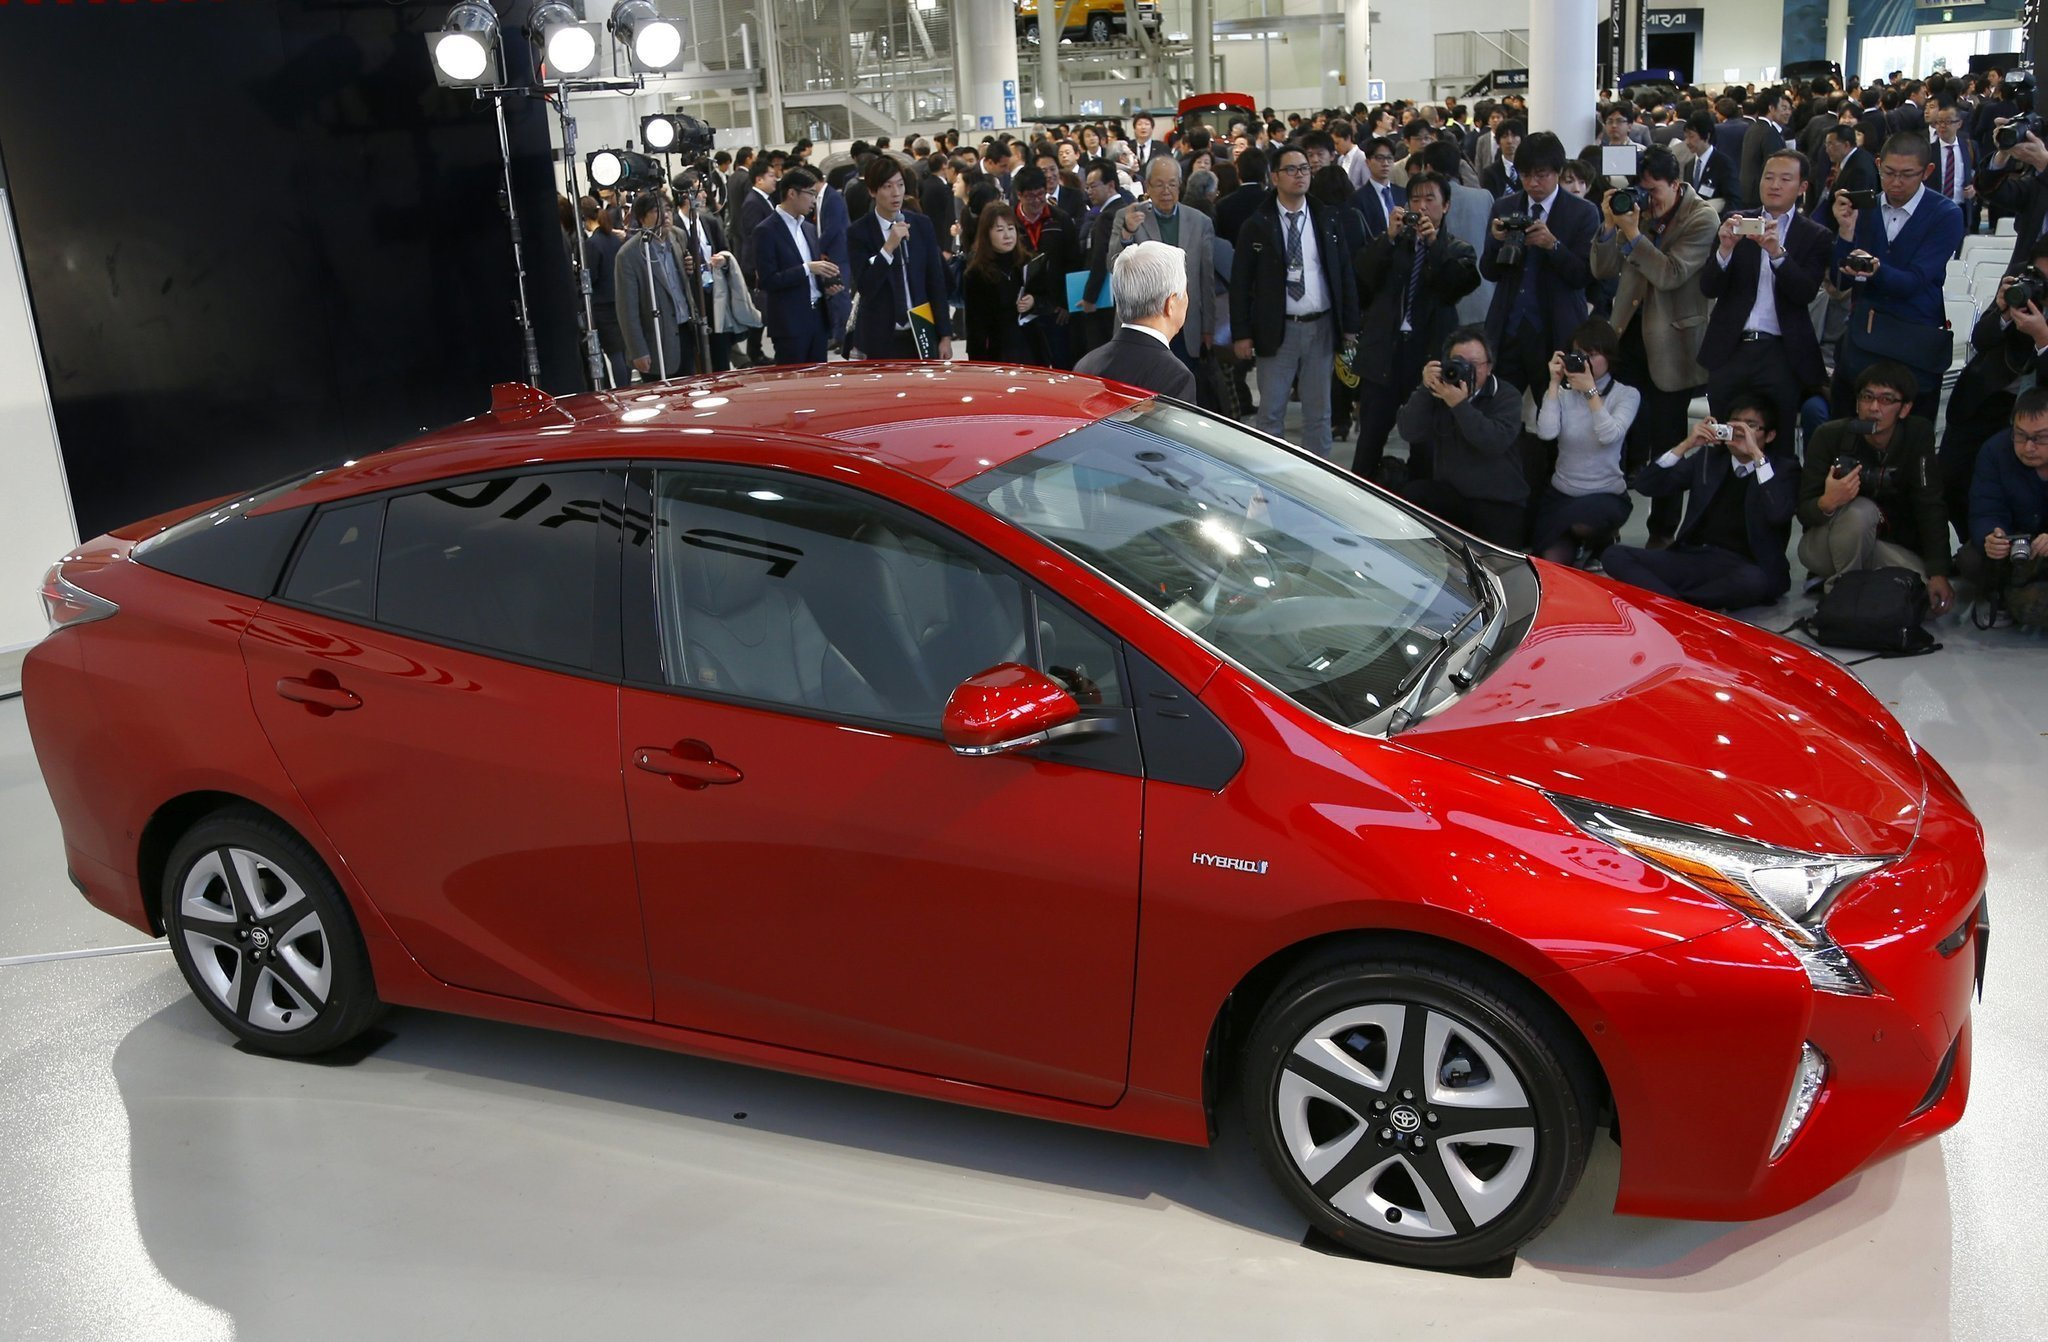 How Low Oil Prices Are Slamming Hybrids And Electric Cars The San Go Union Tribune